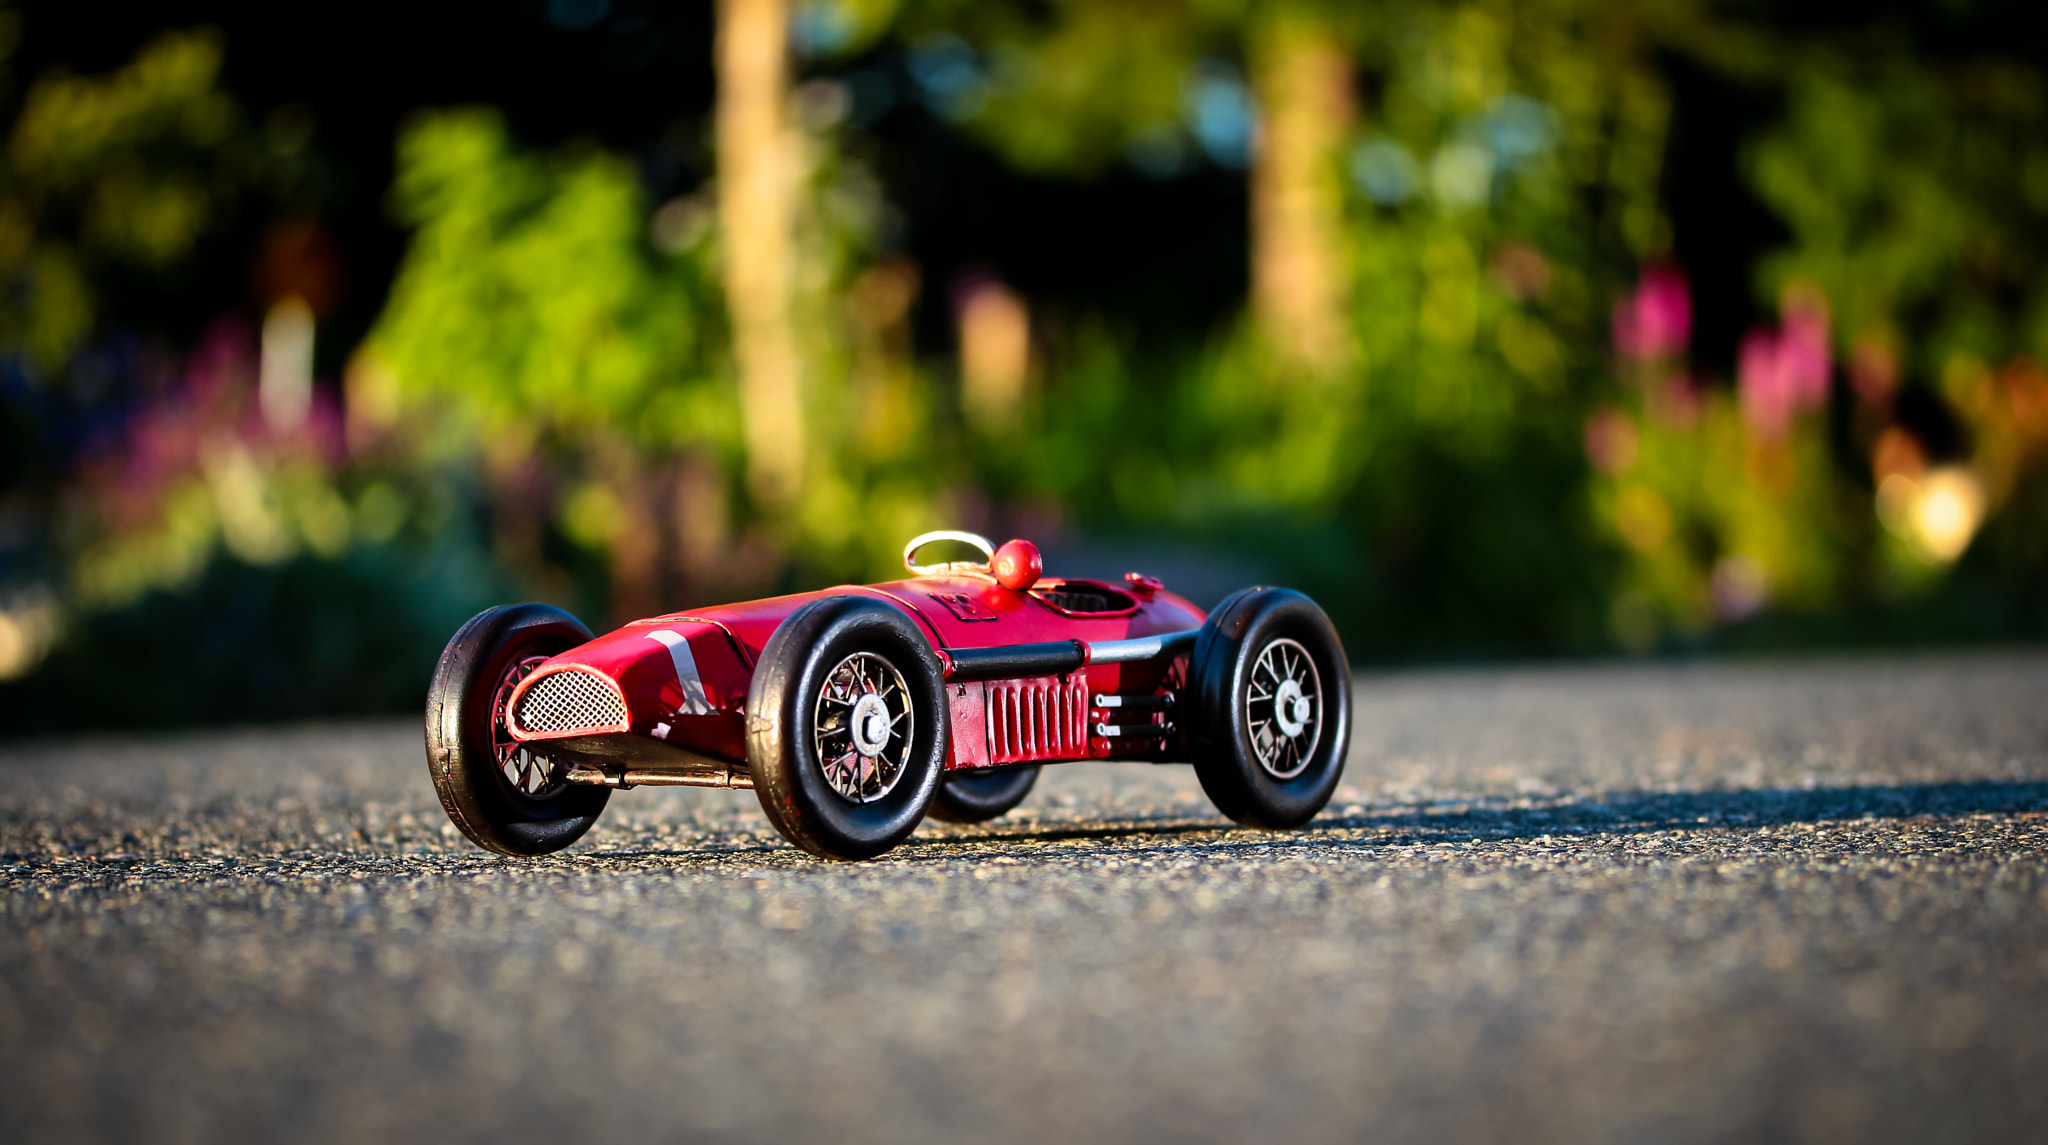 Photograph Little F1 Vintage by Mark Prince on 500px